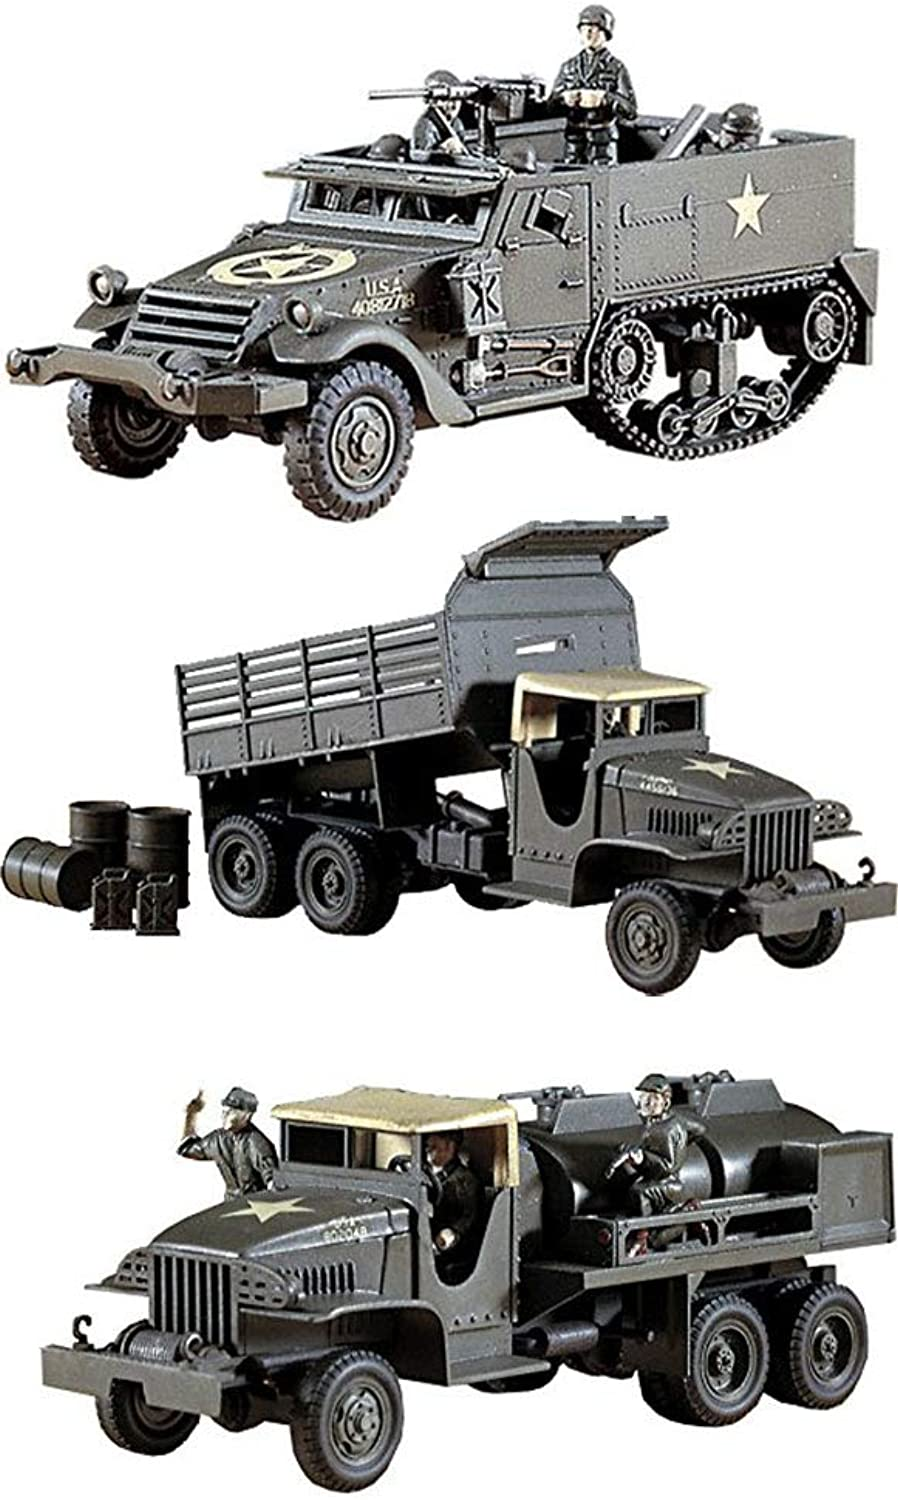 3 Hasegawa WW2 US Military Truck Assembly Models - GMC Gasoline Tank Truck, Dump Truck & M4A1 Half Track (Japan Import)